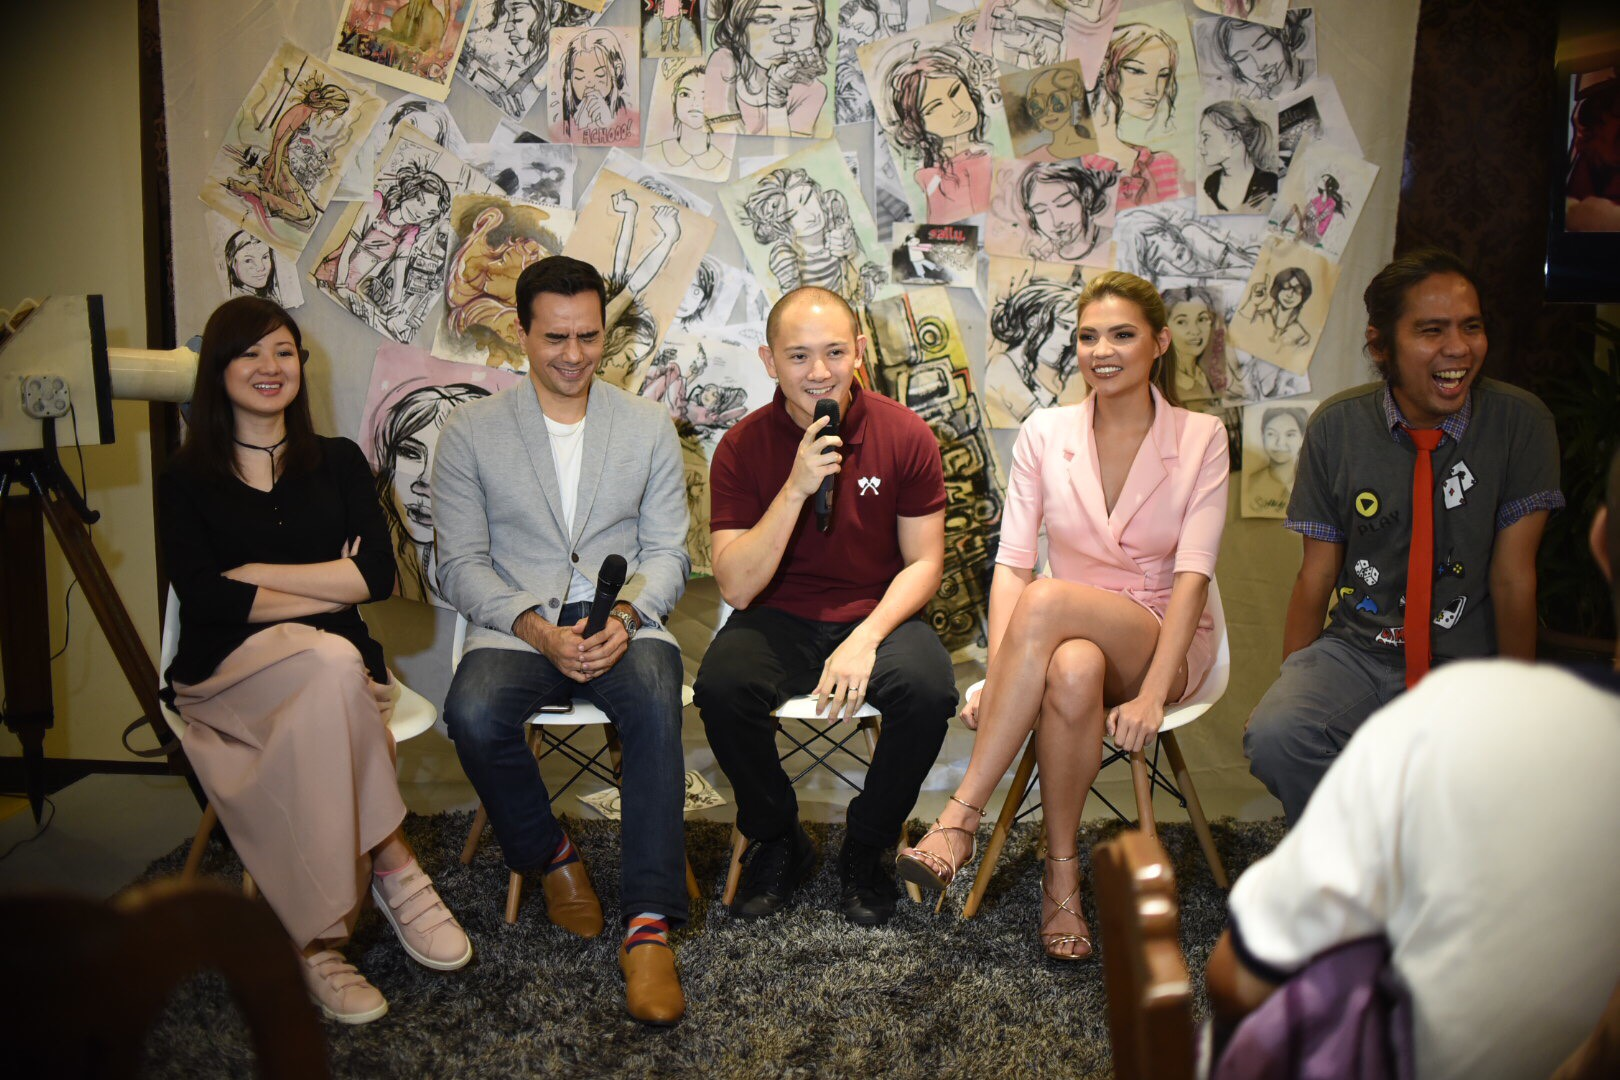 12 YEARS. From left: Writer Charlene Sawit-Esguerra, actors TJ Trinidad, Enzo Marcos, Rhian Ramos, and director Avid Liongoren reunite at the 'Saving Sally' press conference. Photo by Martin San Diego/Rappler